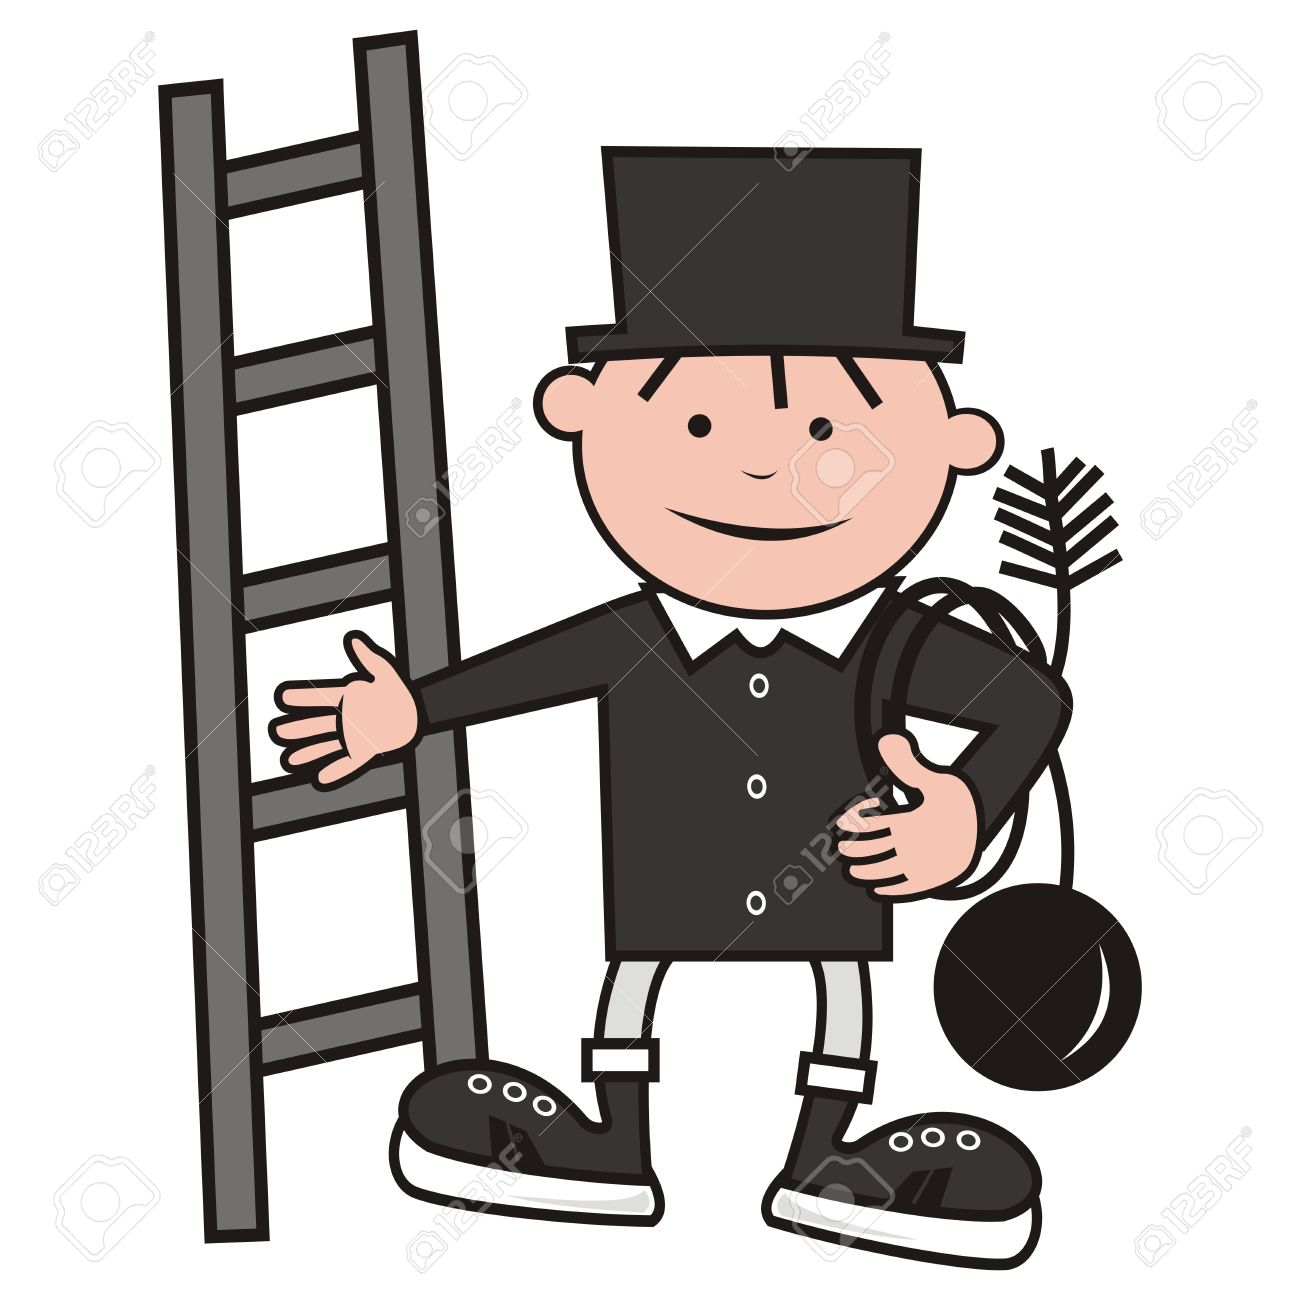 Chimney sweep clipart #5